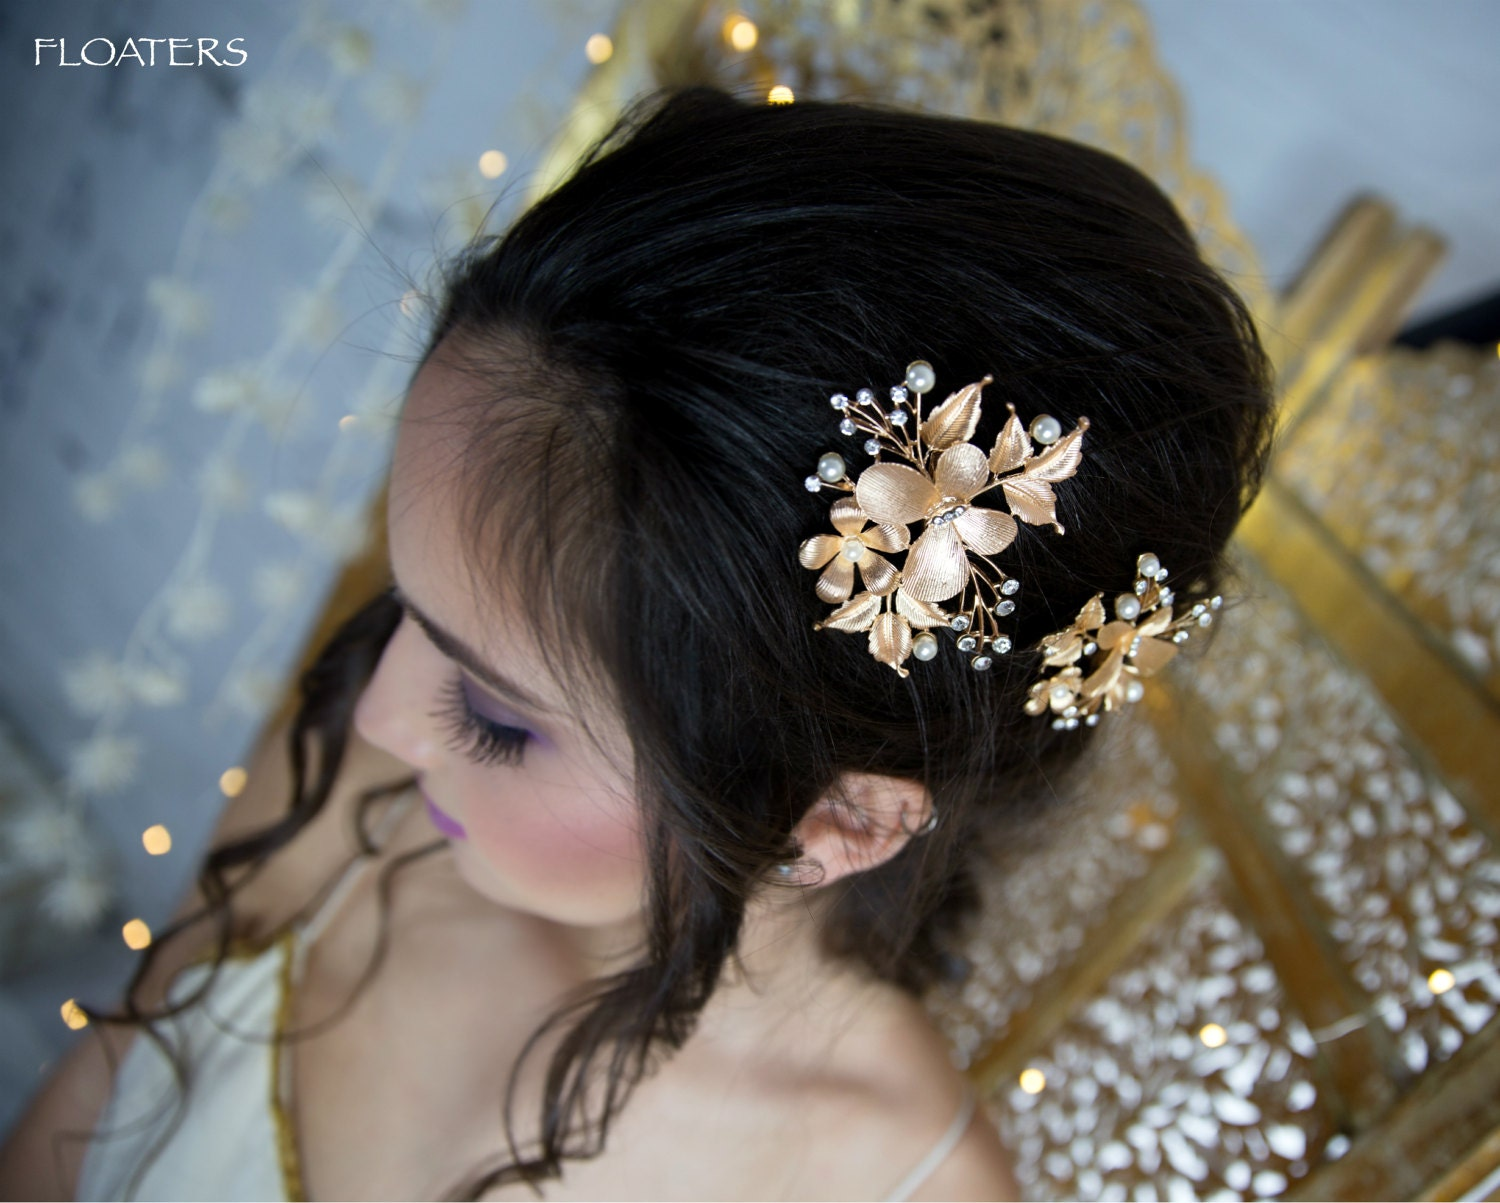 gold hair clips, gold barrettes and hair clips, gold wedding hair